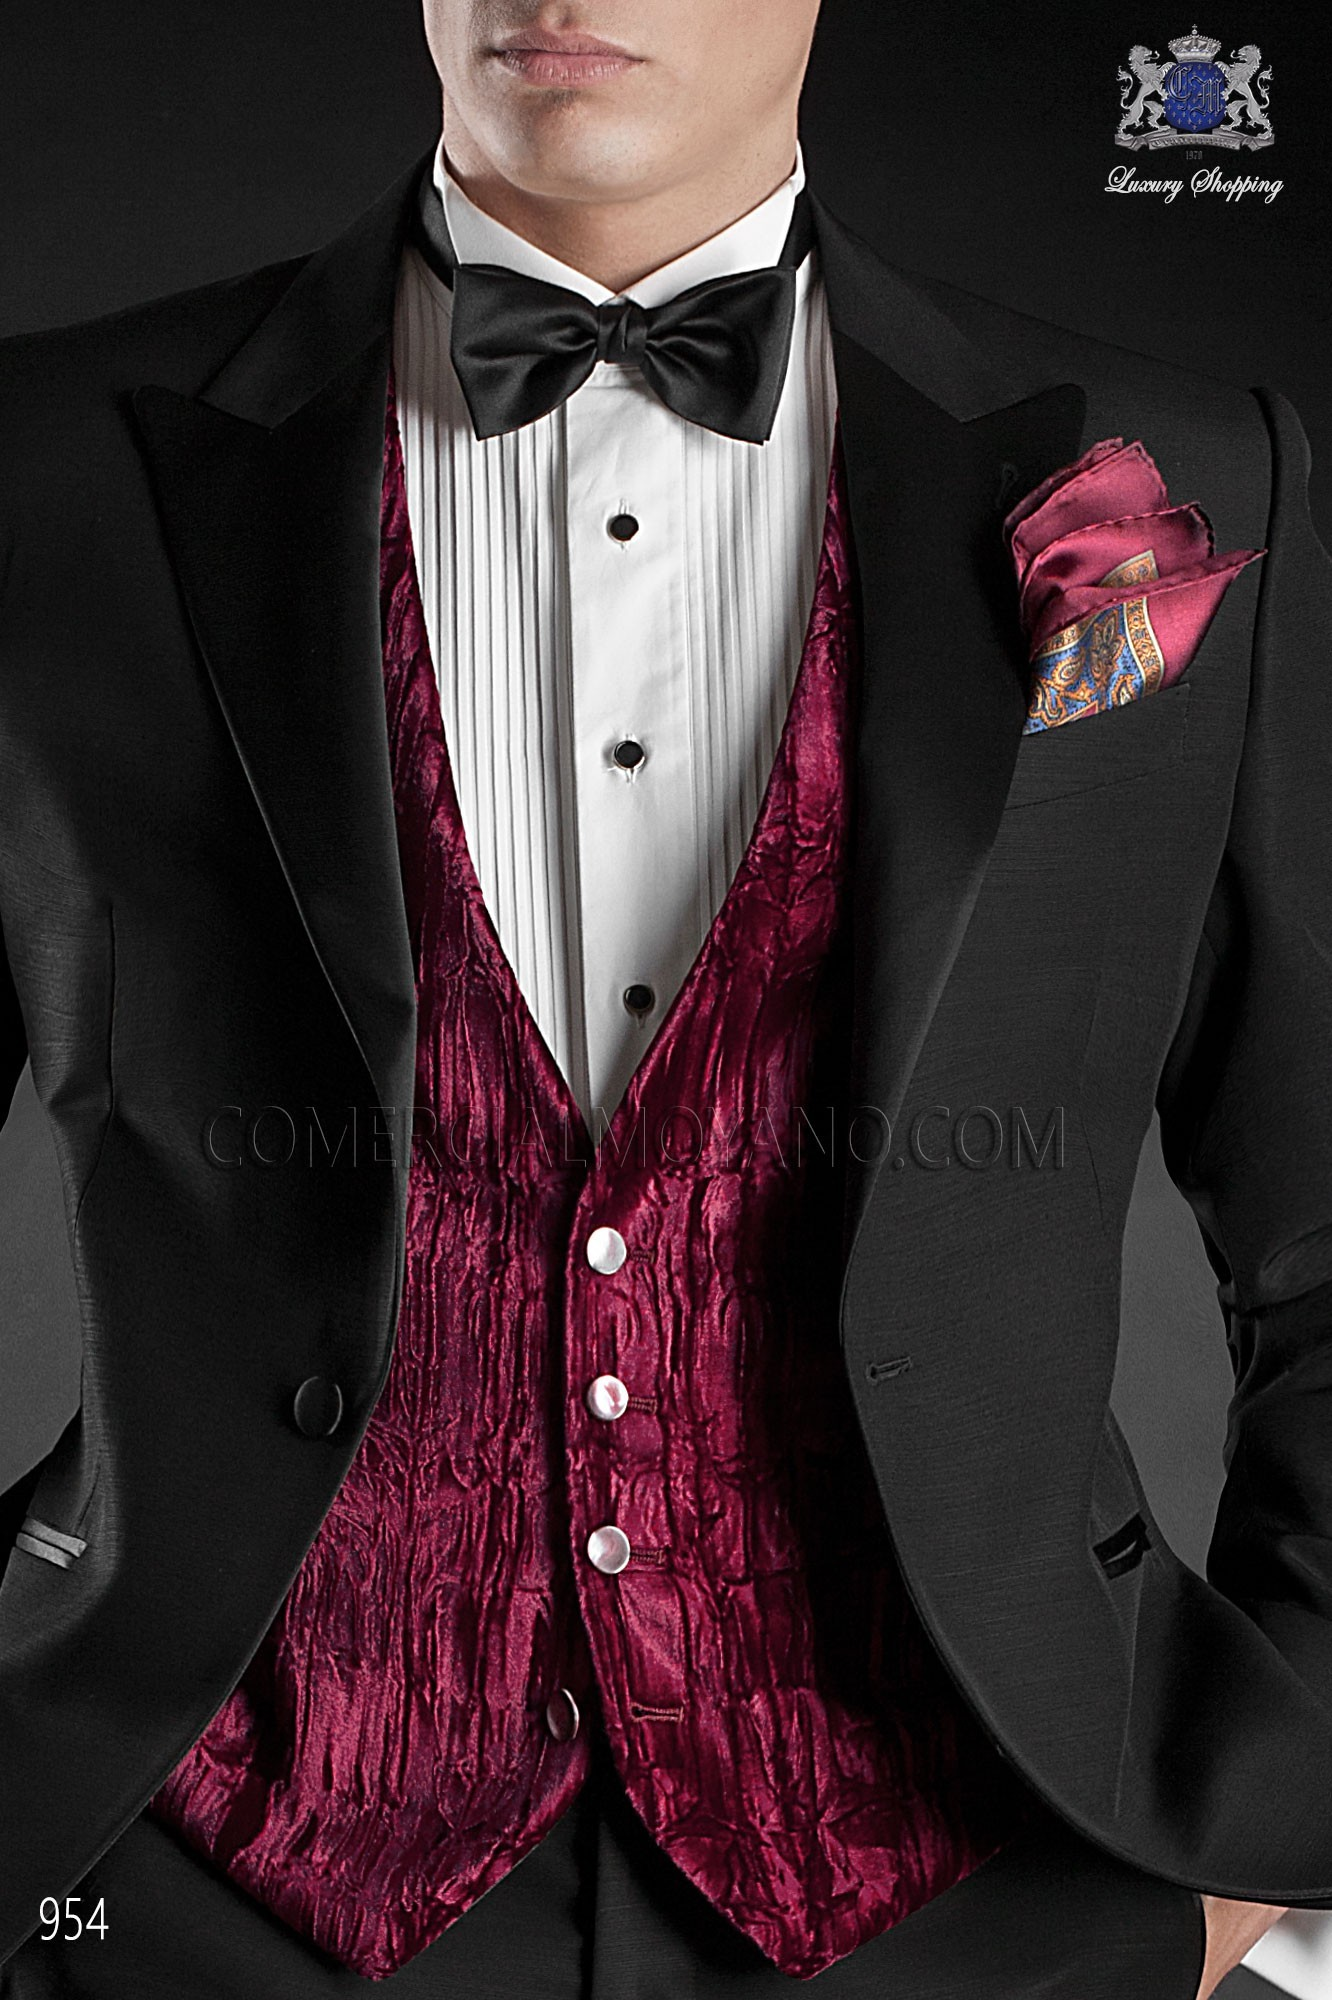 Italian blacktie black men wedding suit, model: 954 Ottavio Nuccio Gala 2017 Black Tie Collection